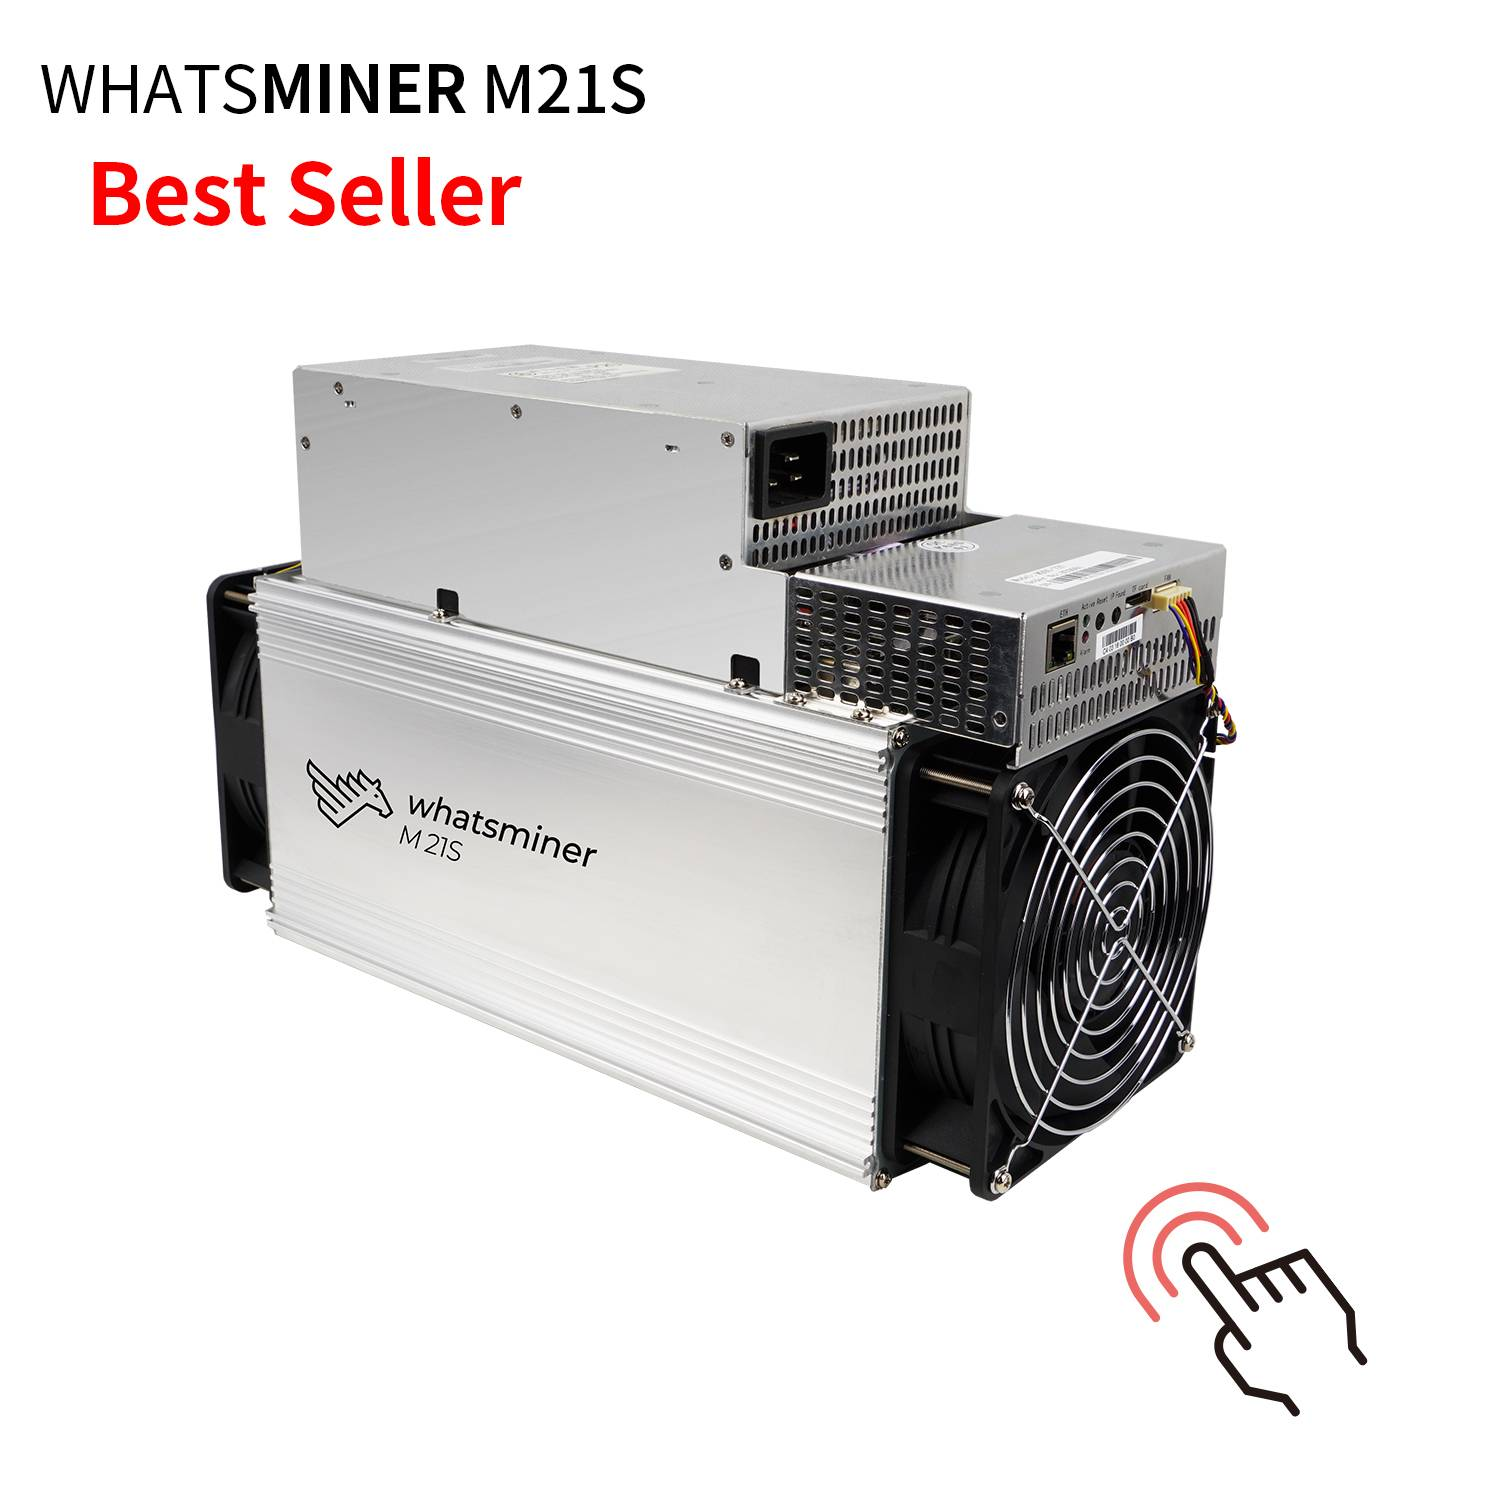 2020 Top3 Short ROI Asic Miner Microbt Whatsminer M21s 56Th/s bitcoin mining machine wholesale Featured Image